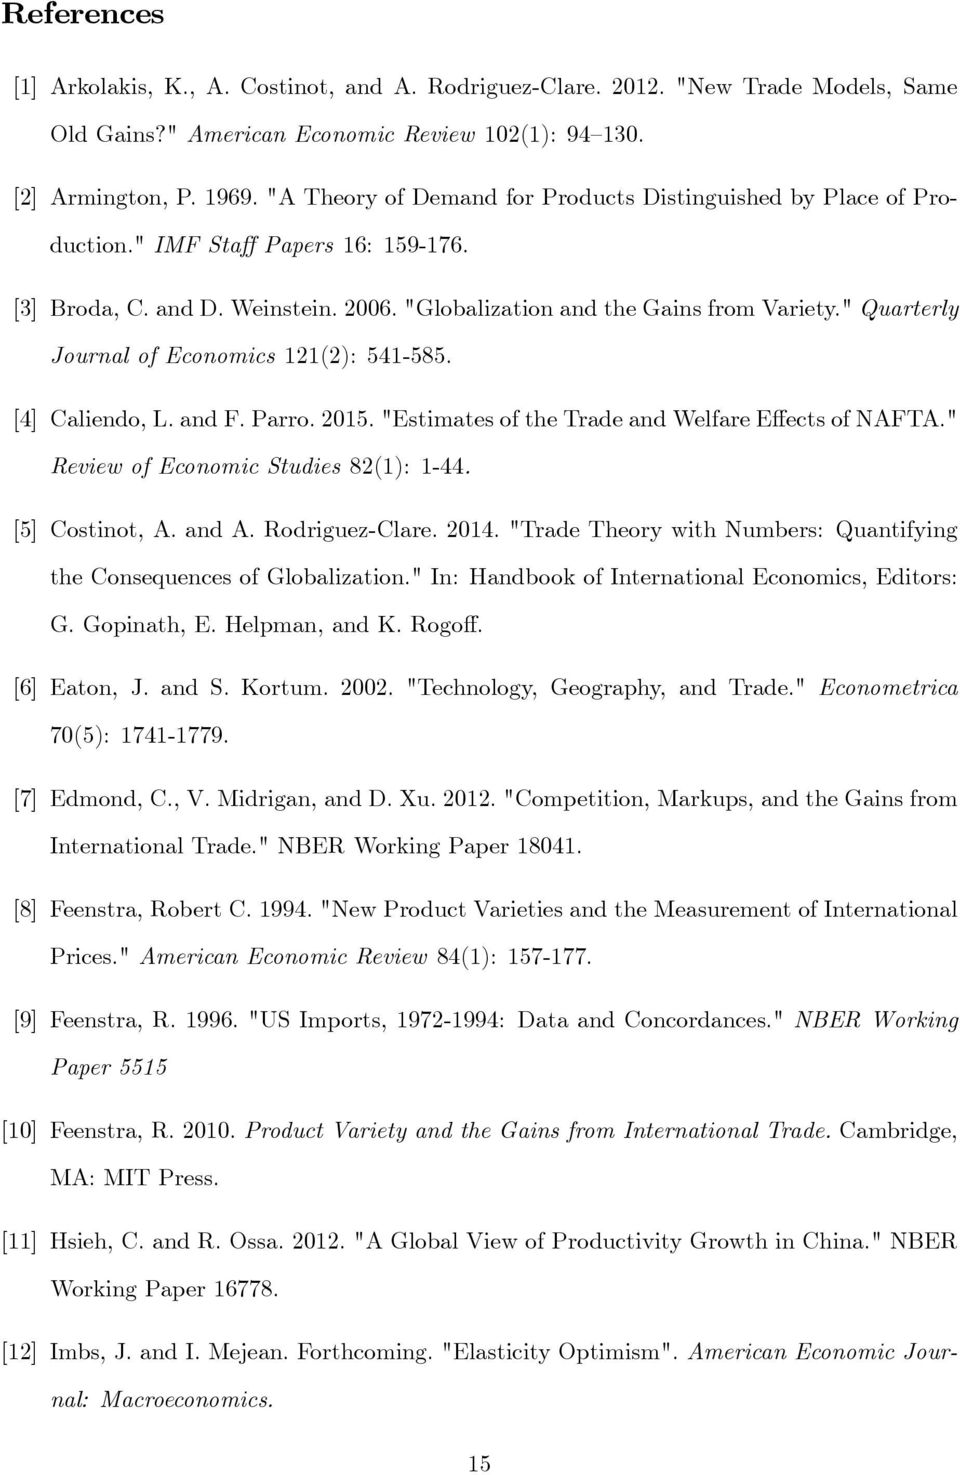 """ Quarterly Journal of Economics 2(2): 54-585. [4] Caliendo, L. and F. Parro. 205. ""Estimates of the Trade and Welfare E ects of NAFTA."" Review of Economic Studies 82(): -44. [5] Costinot, A. and A."